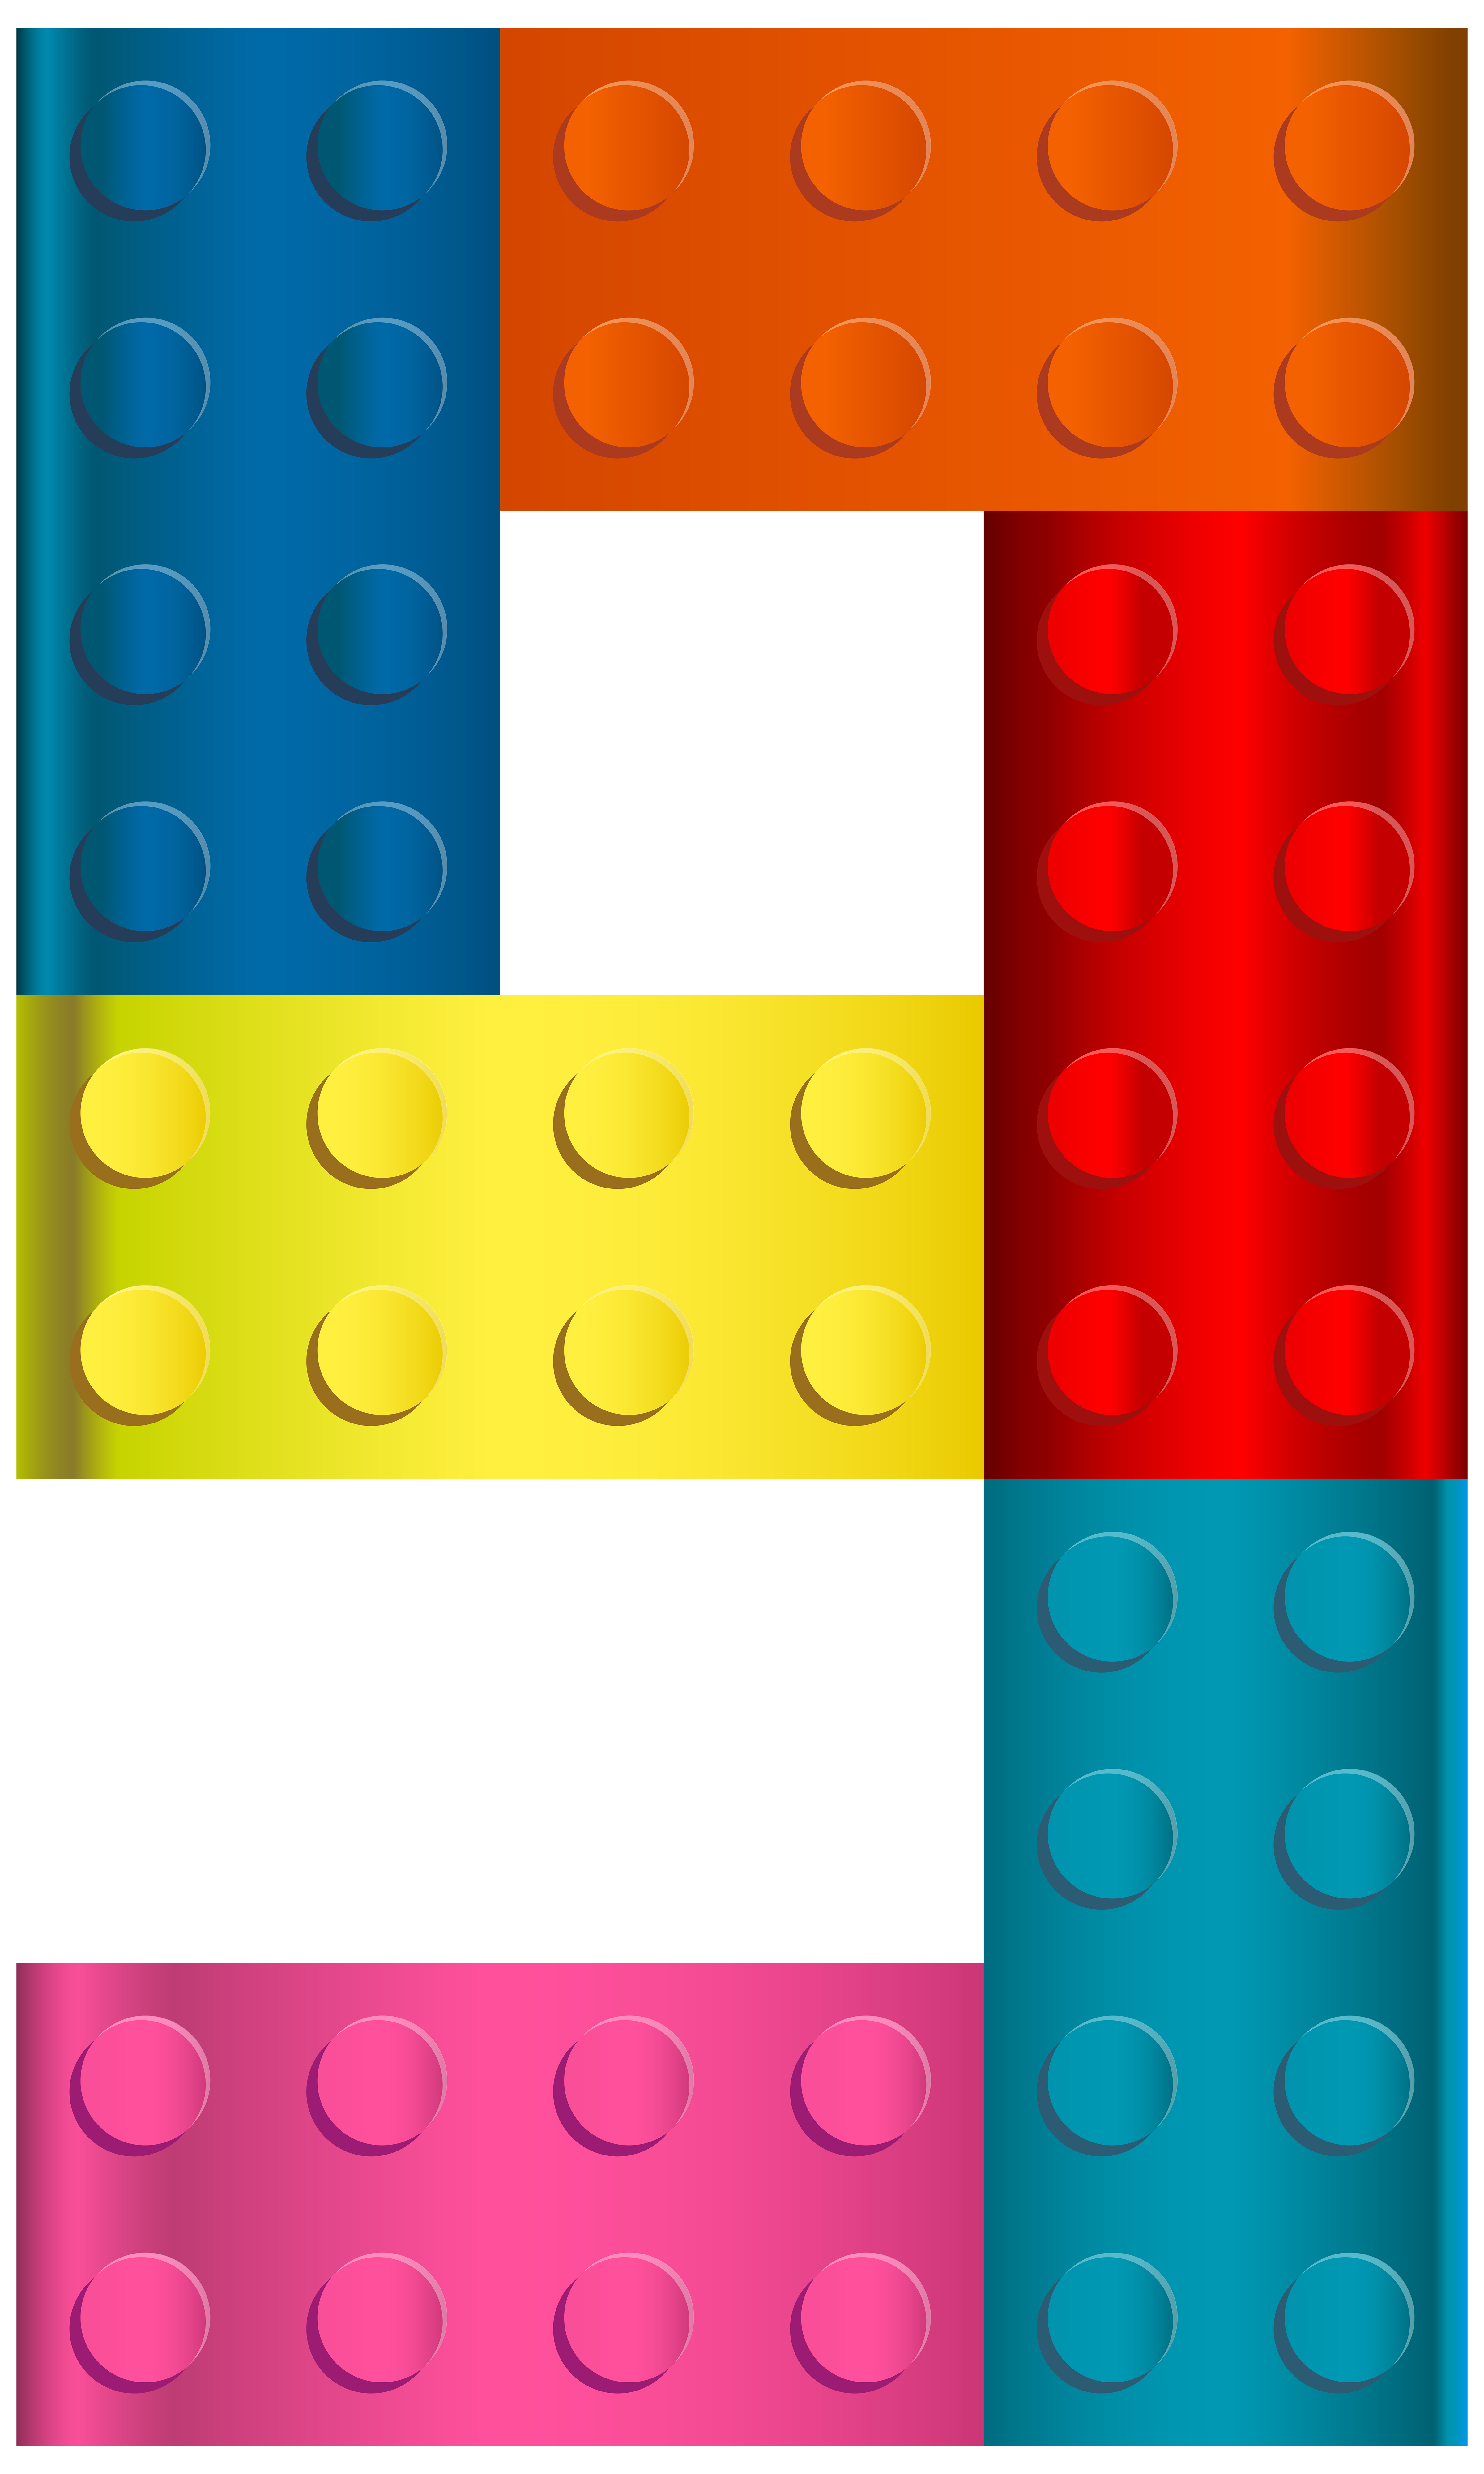 Lego clipart yellow Transparent full Image PNG Number